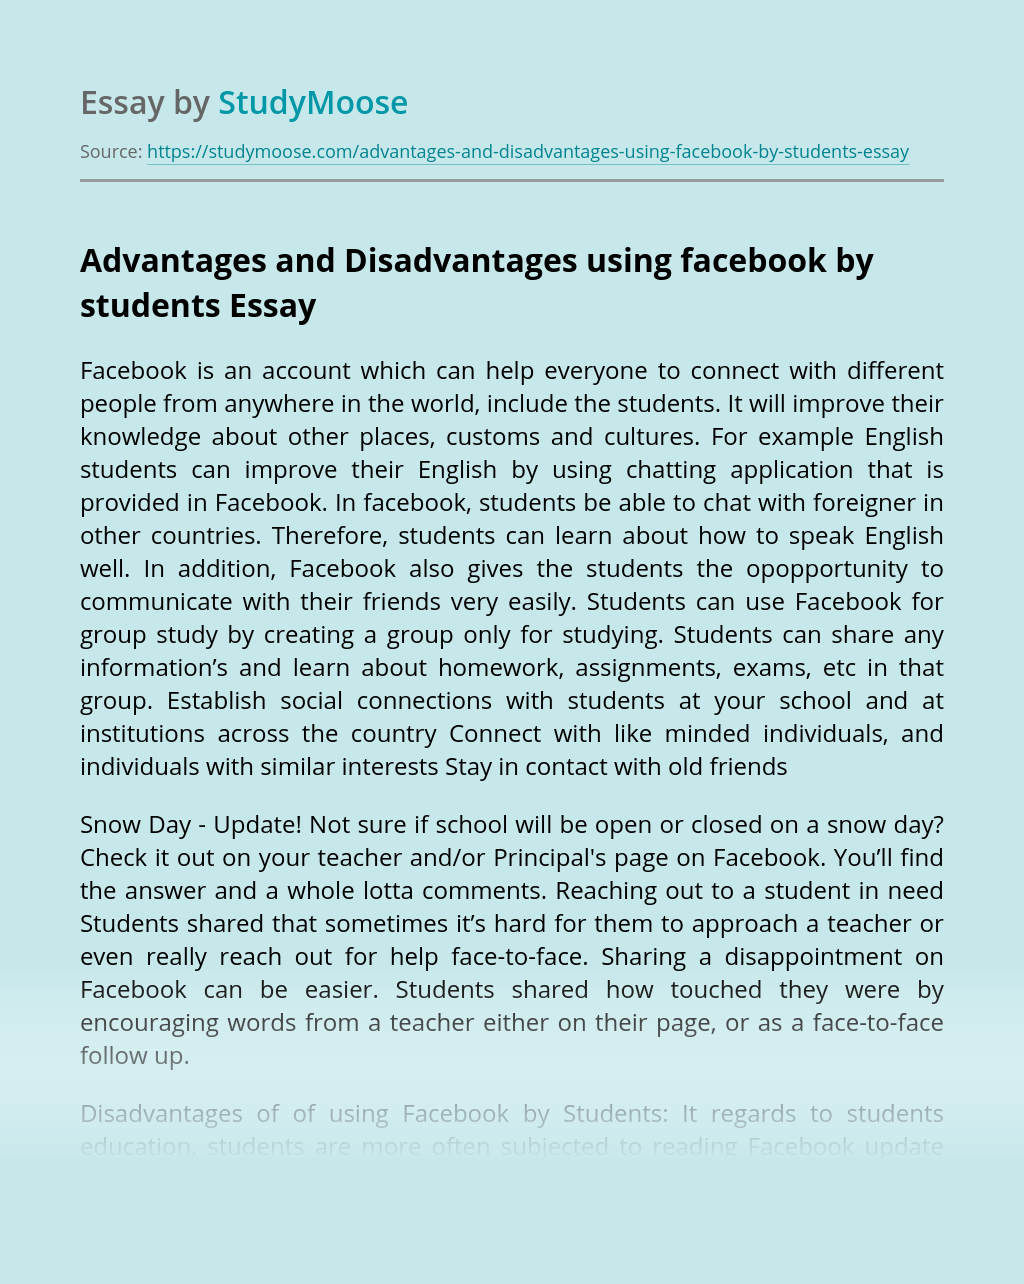 Advantages and Disadvantages using facebook by students